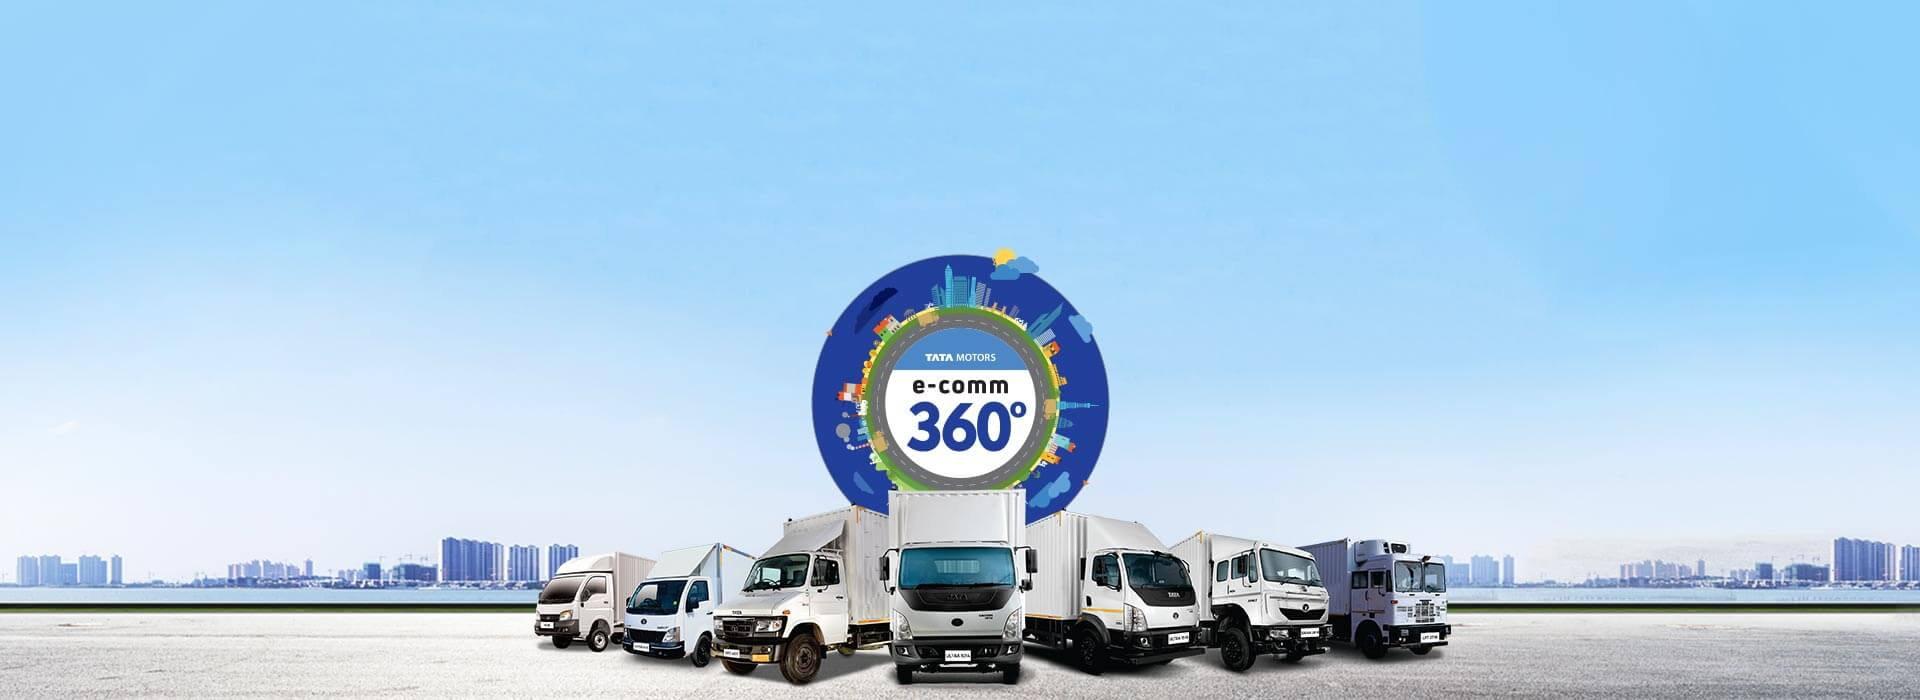 Tata Light Trucks E-comm 360